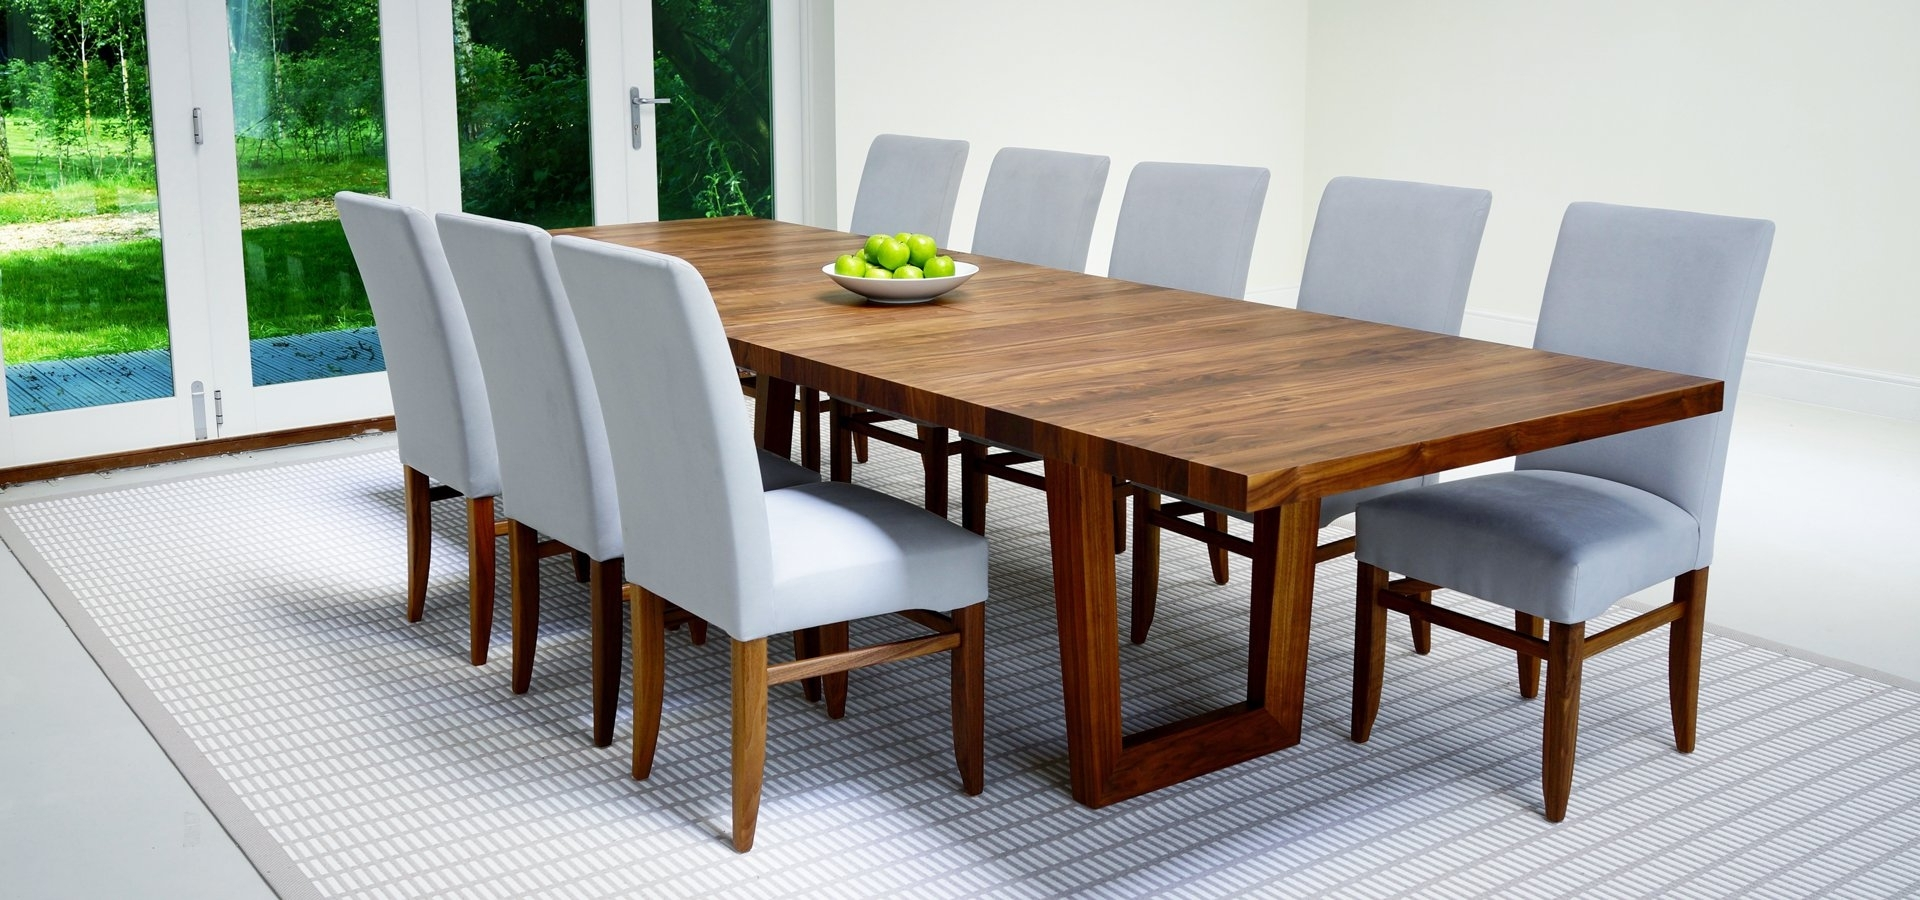 Best And Newest Contemporary Dining Tables & Furnitureberrydesign. Bespoke /custom Regarding Dining Room Tables (Gallery 20 of 25)